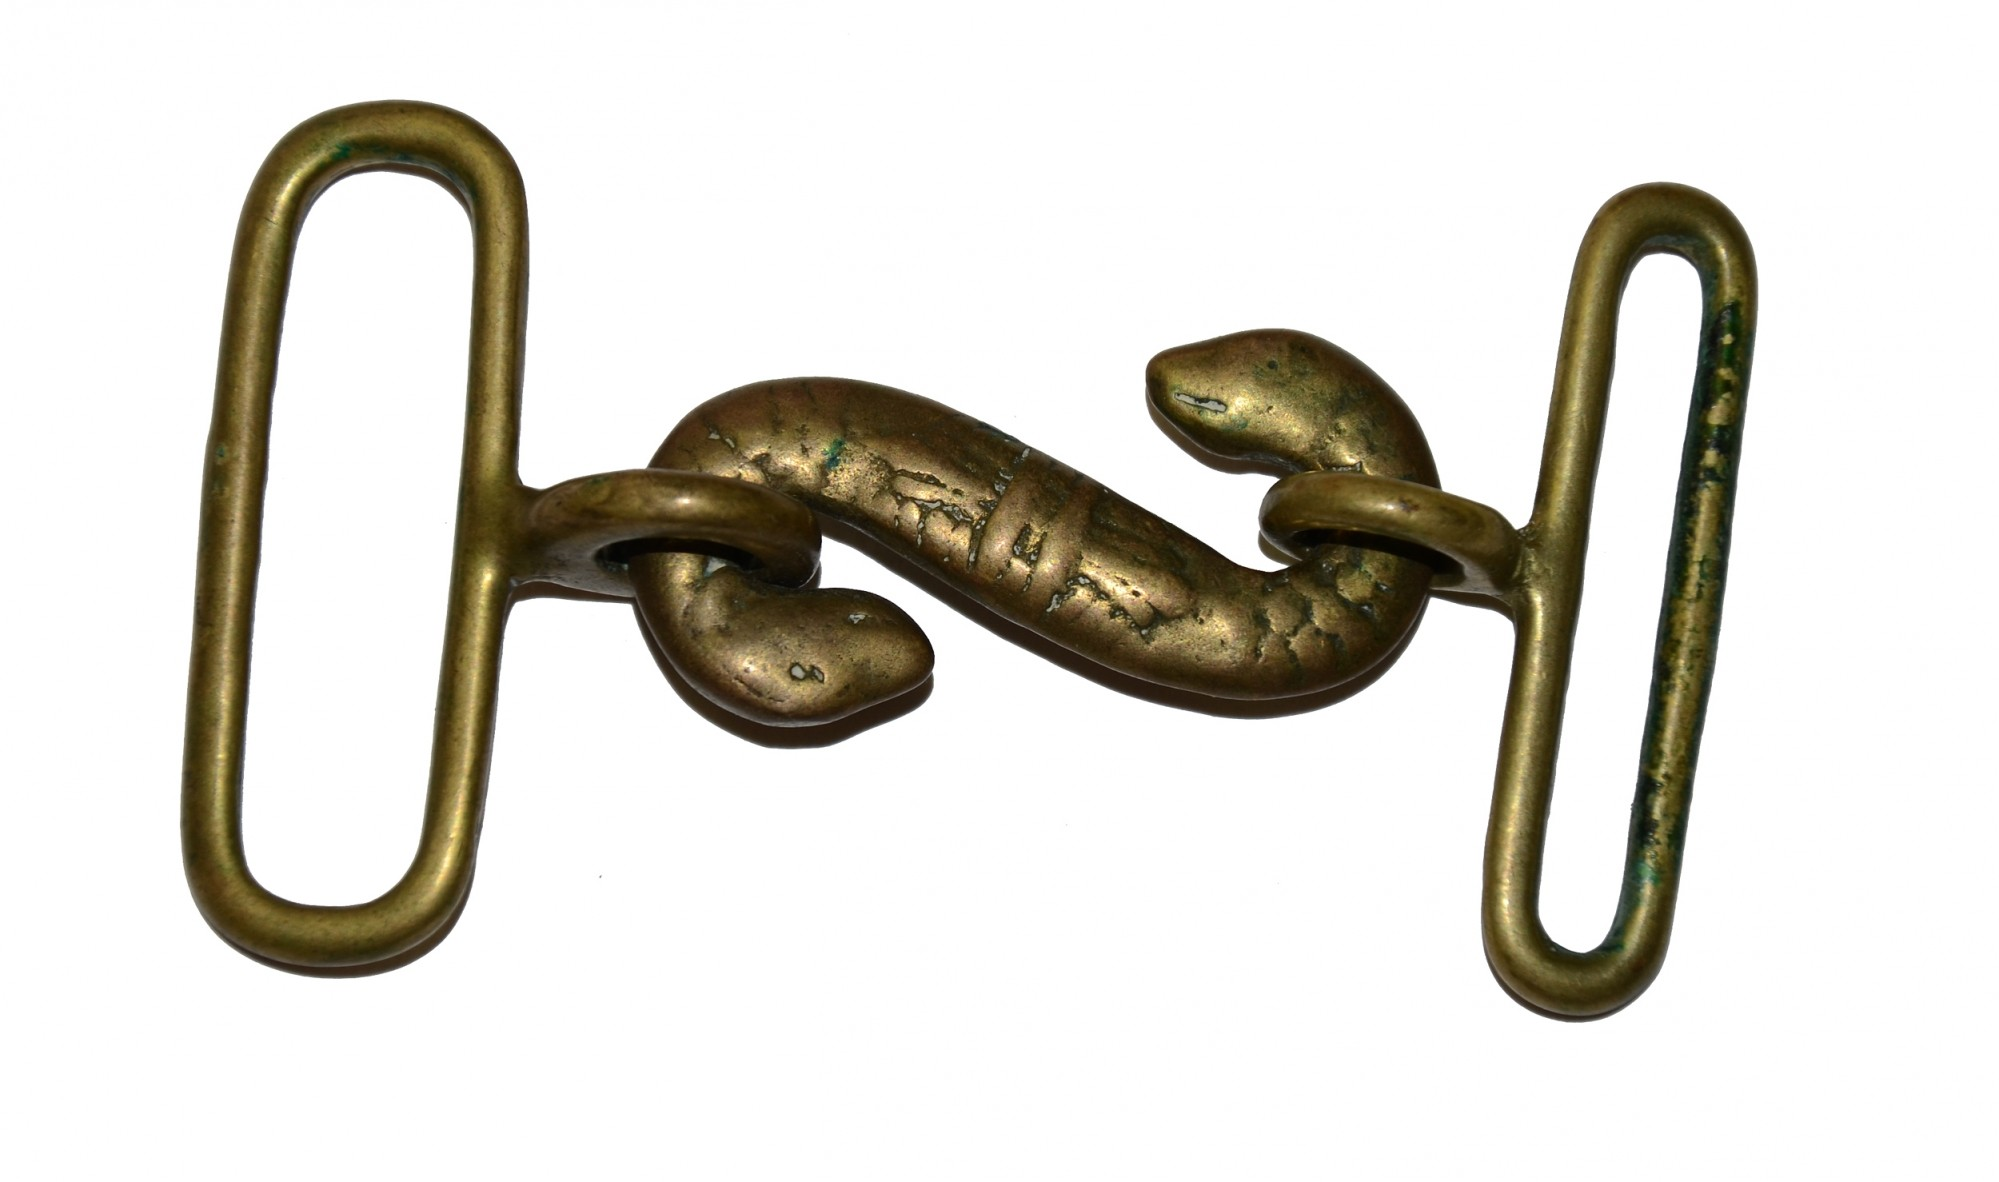 POST-CIVIL WAR SNAKE BUCKLE